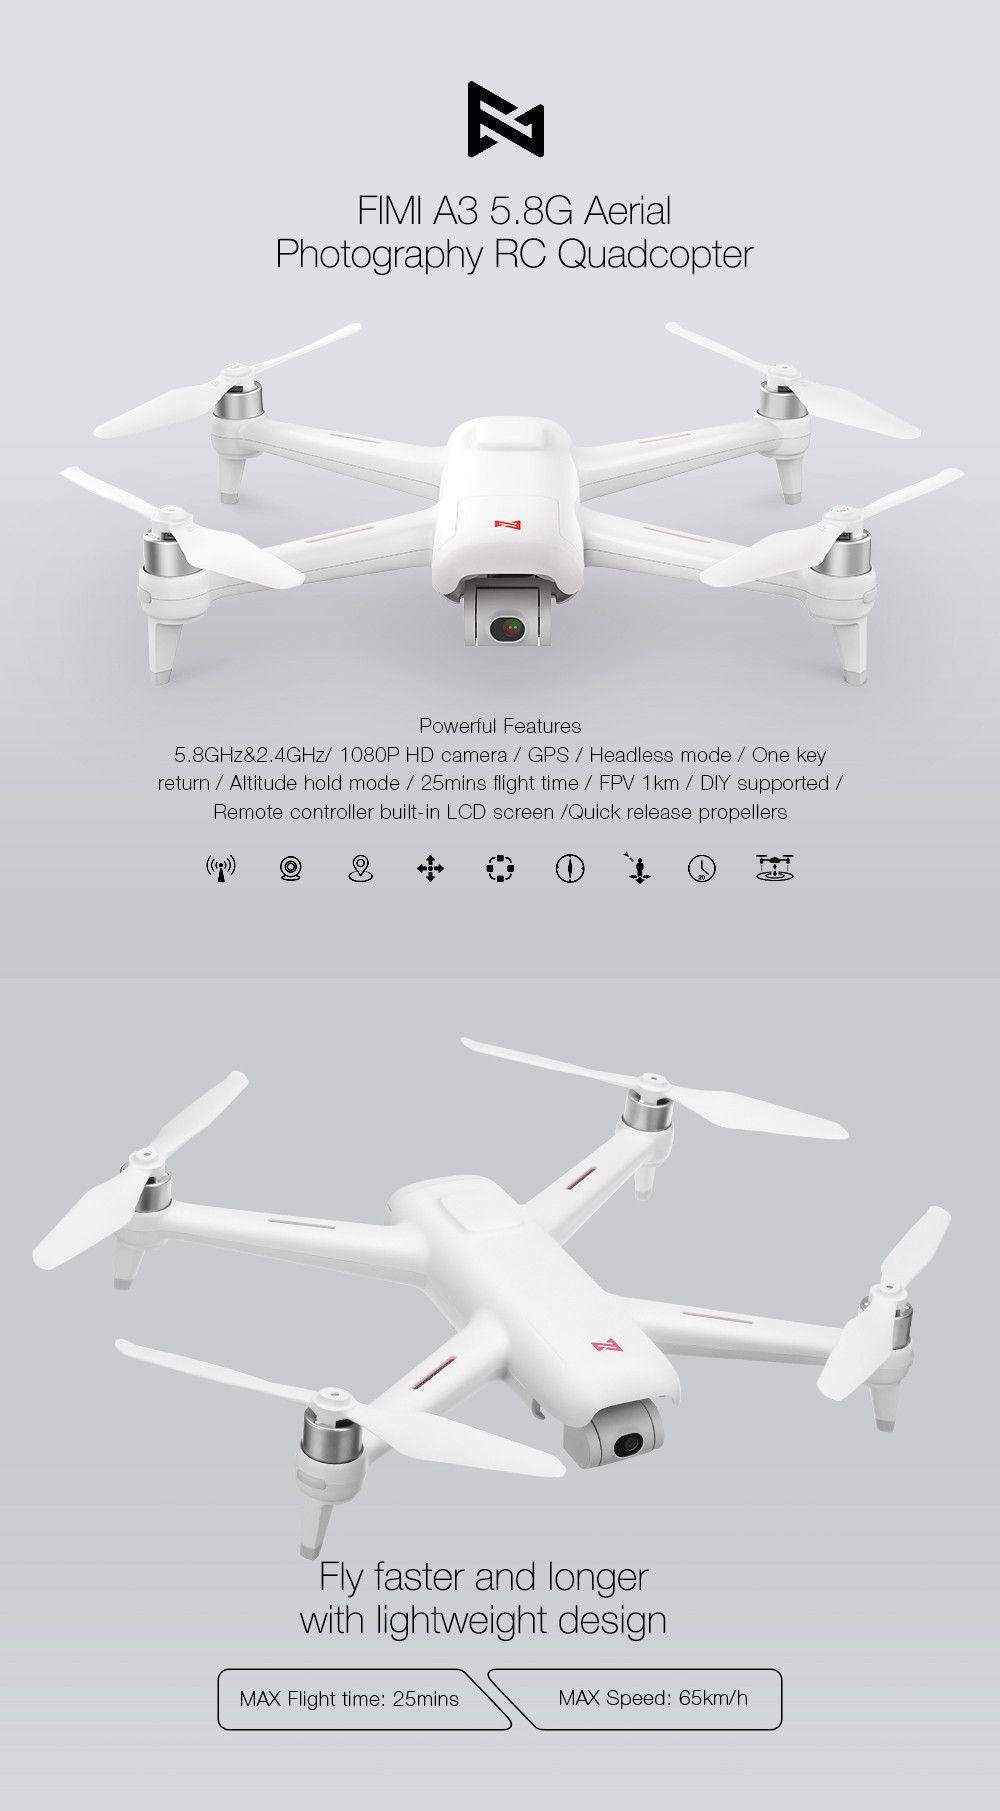 Xiaomi FIMI A3 5 8G 1KM FPV With 2-axis Gimbal 1080P Camera